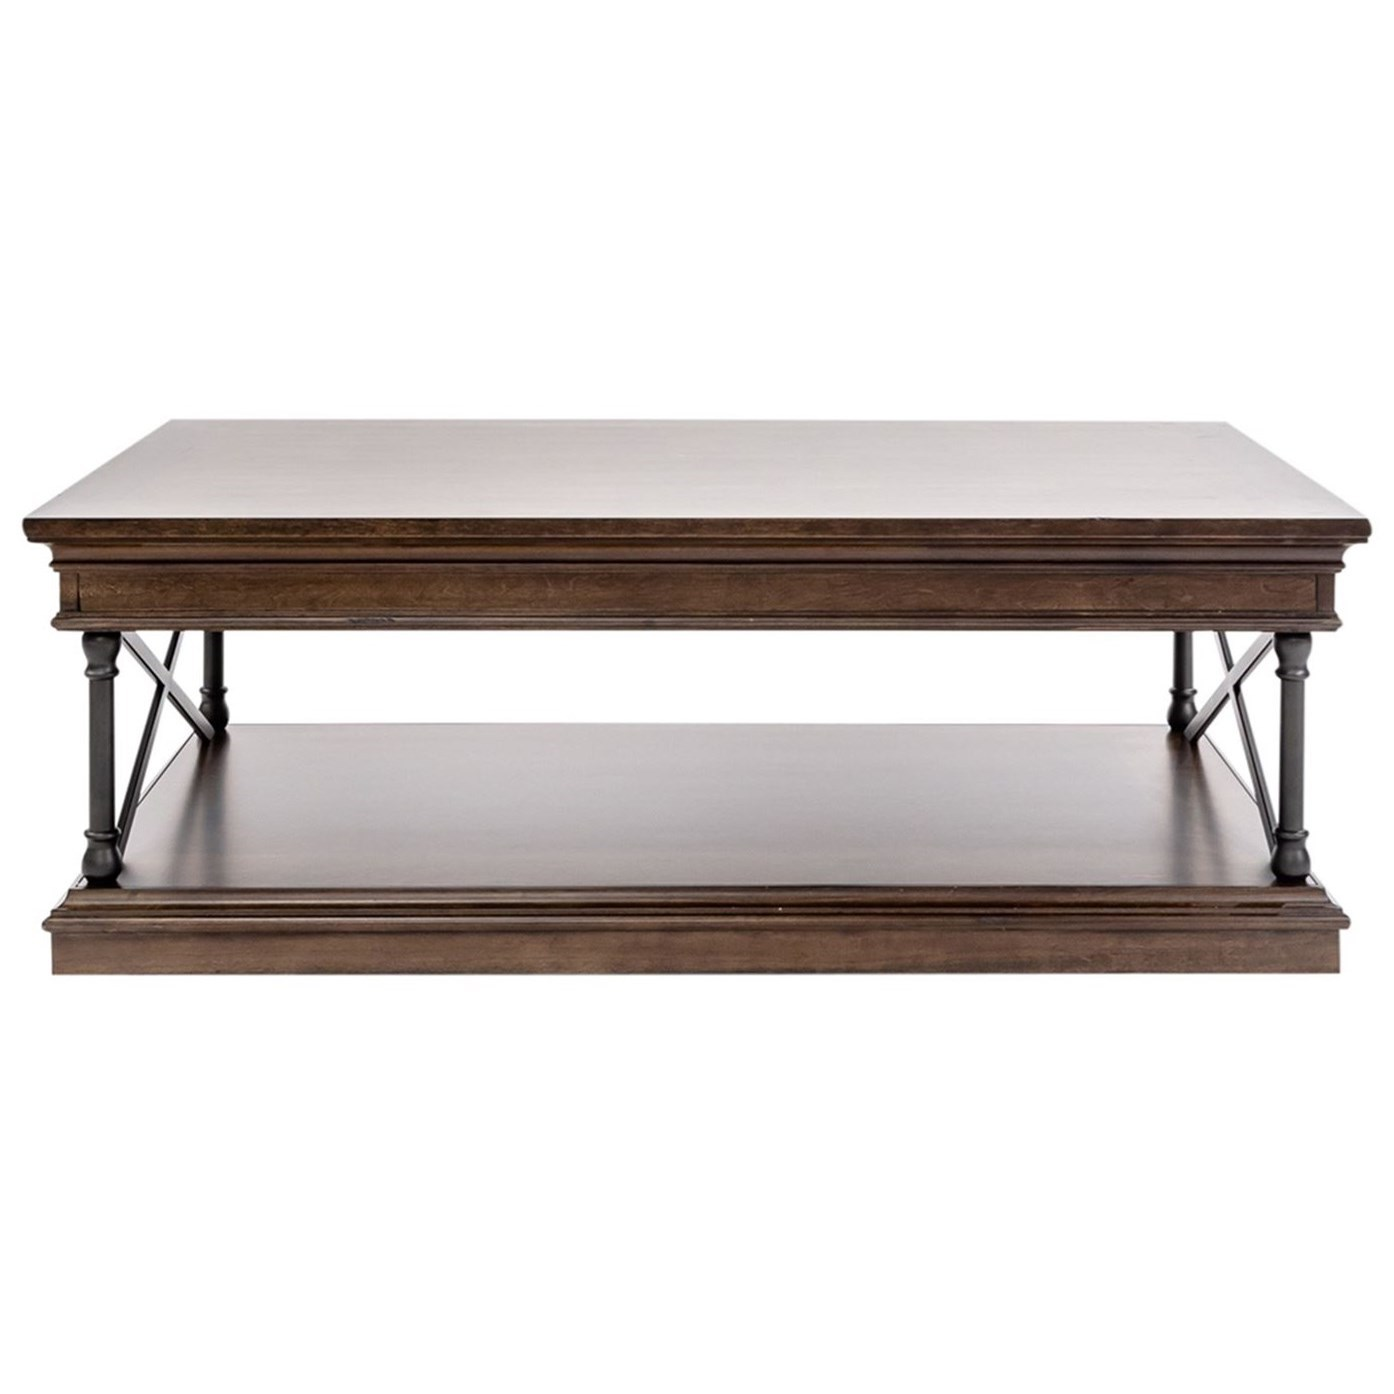 Tribeca Rectangular Cocktail Table by Liberty Furniture at Story & Lee Furniture